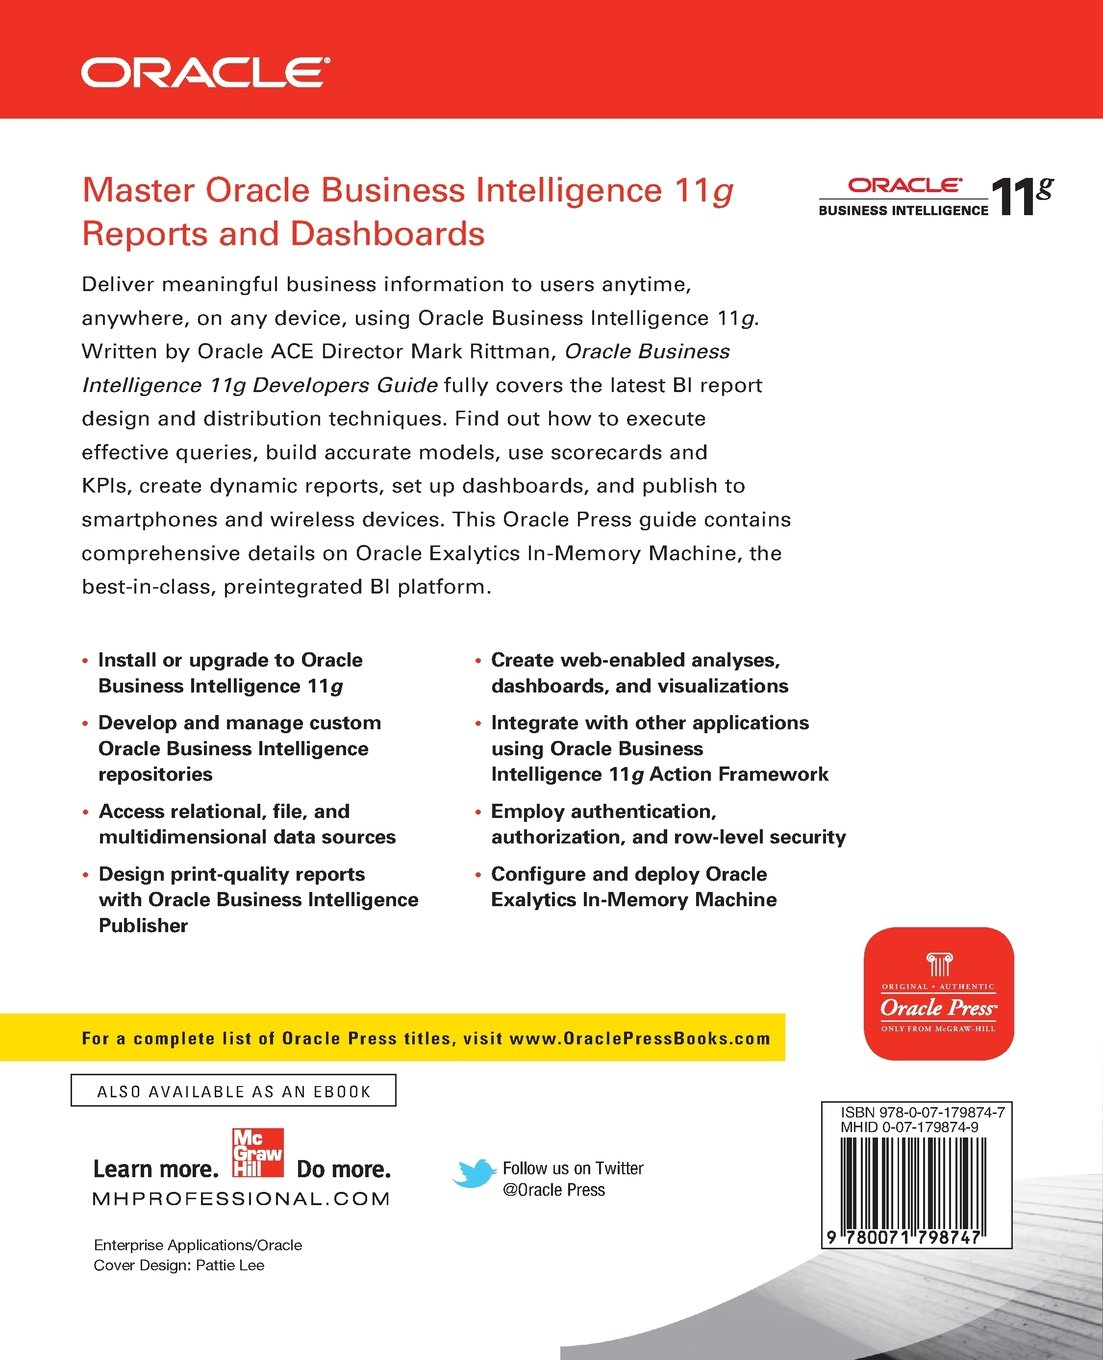 Buy Oracle Business Intelligence 11g Developers Guide Book Online at Low  Prices in India | Oracle Business Intelligence 11g Developers Guide Reviews  ...